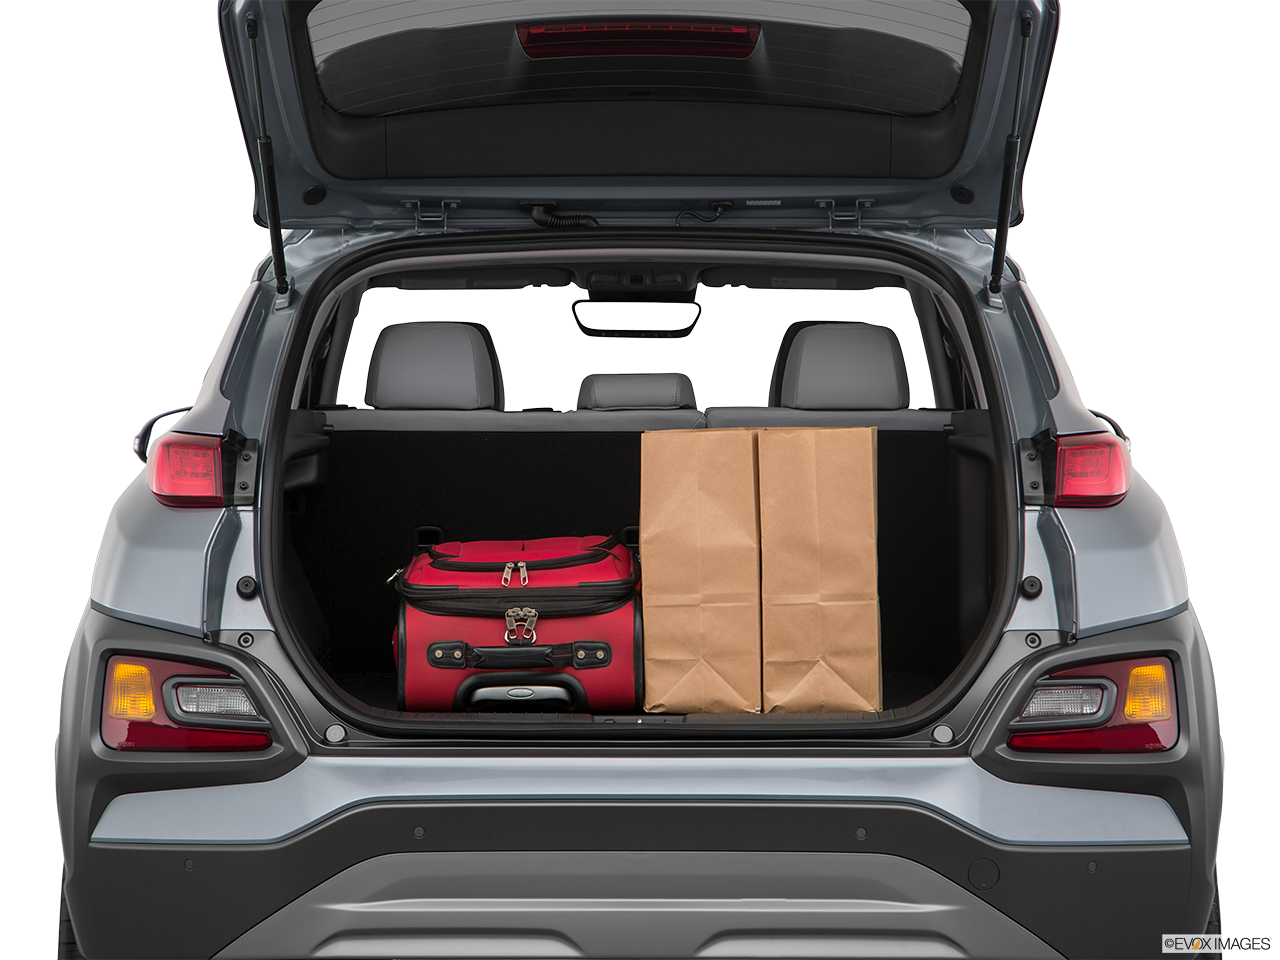 Trunk view of the Hyundai Kona Electric